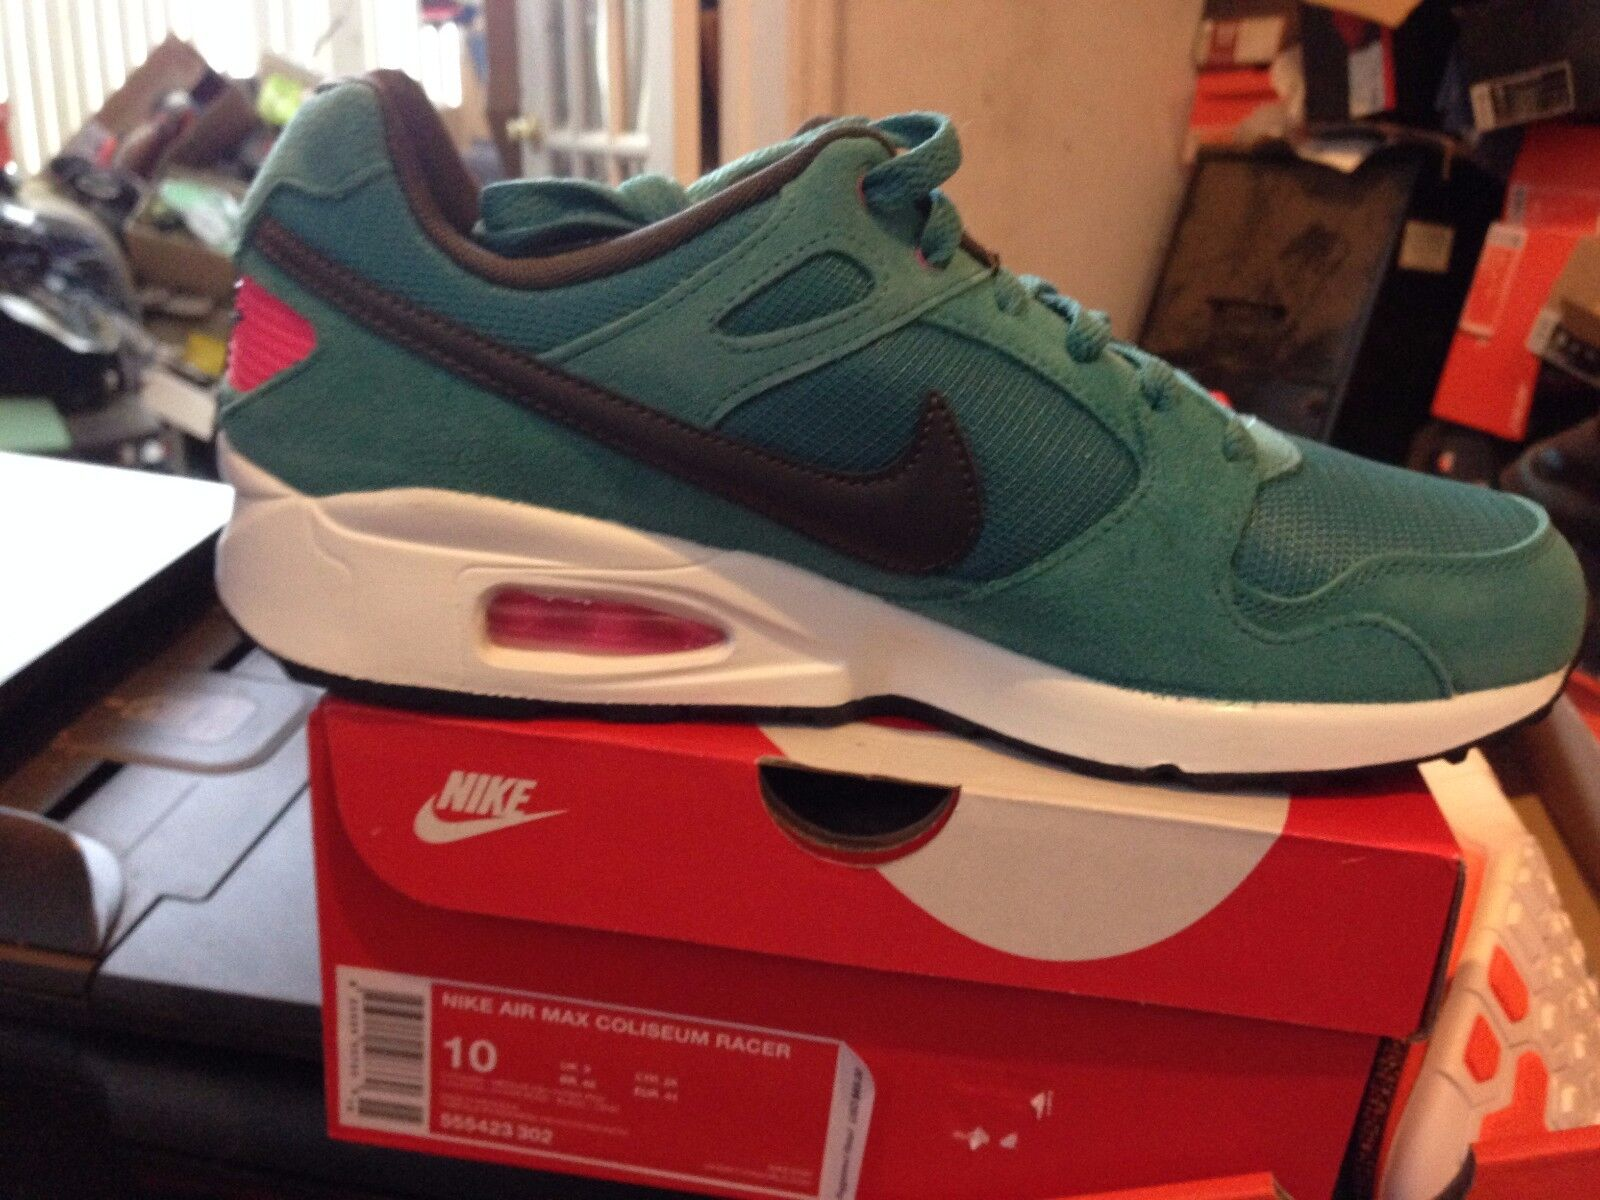 NIKE AIR MAX COLISEUM RACER BNIB SIZE 10 BLUE/WH/BLK Comfortable and good-looking